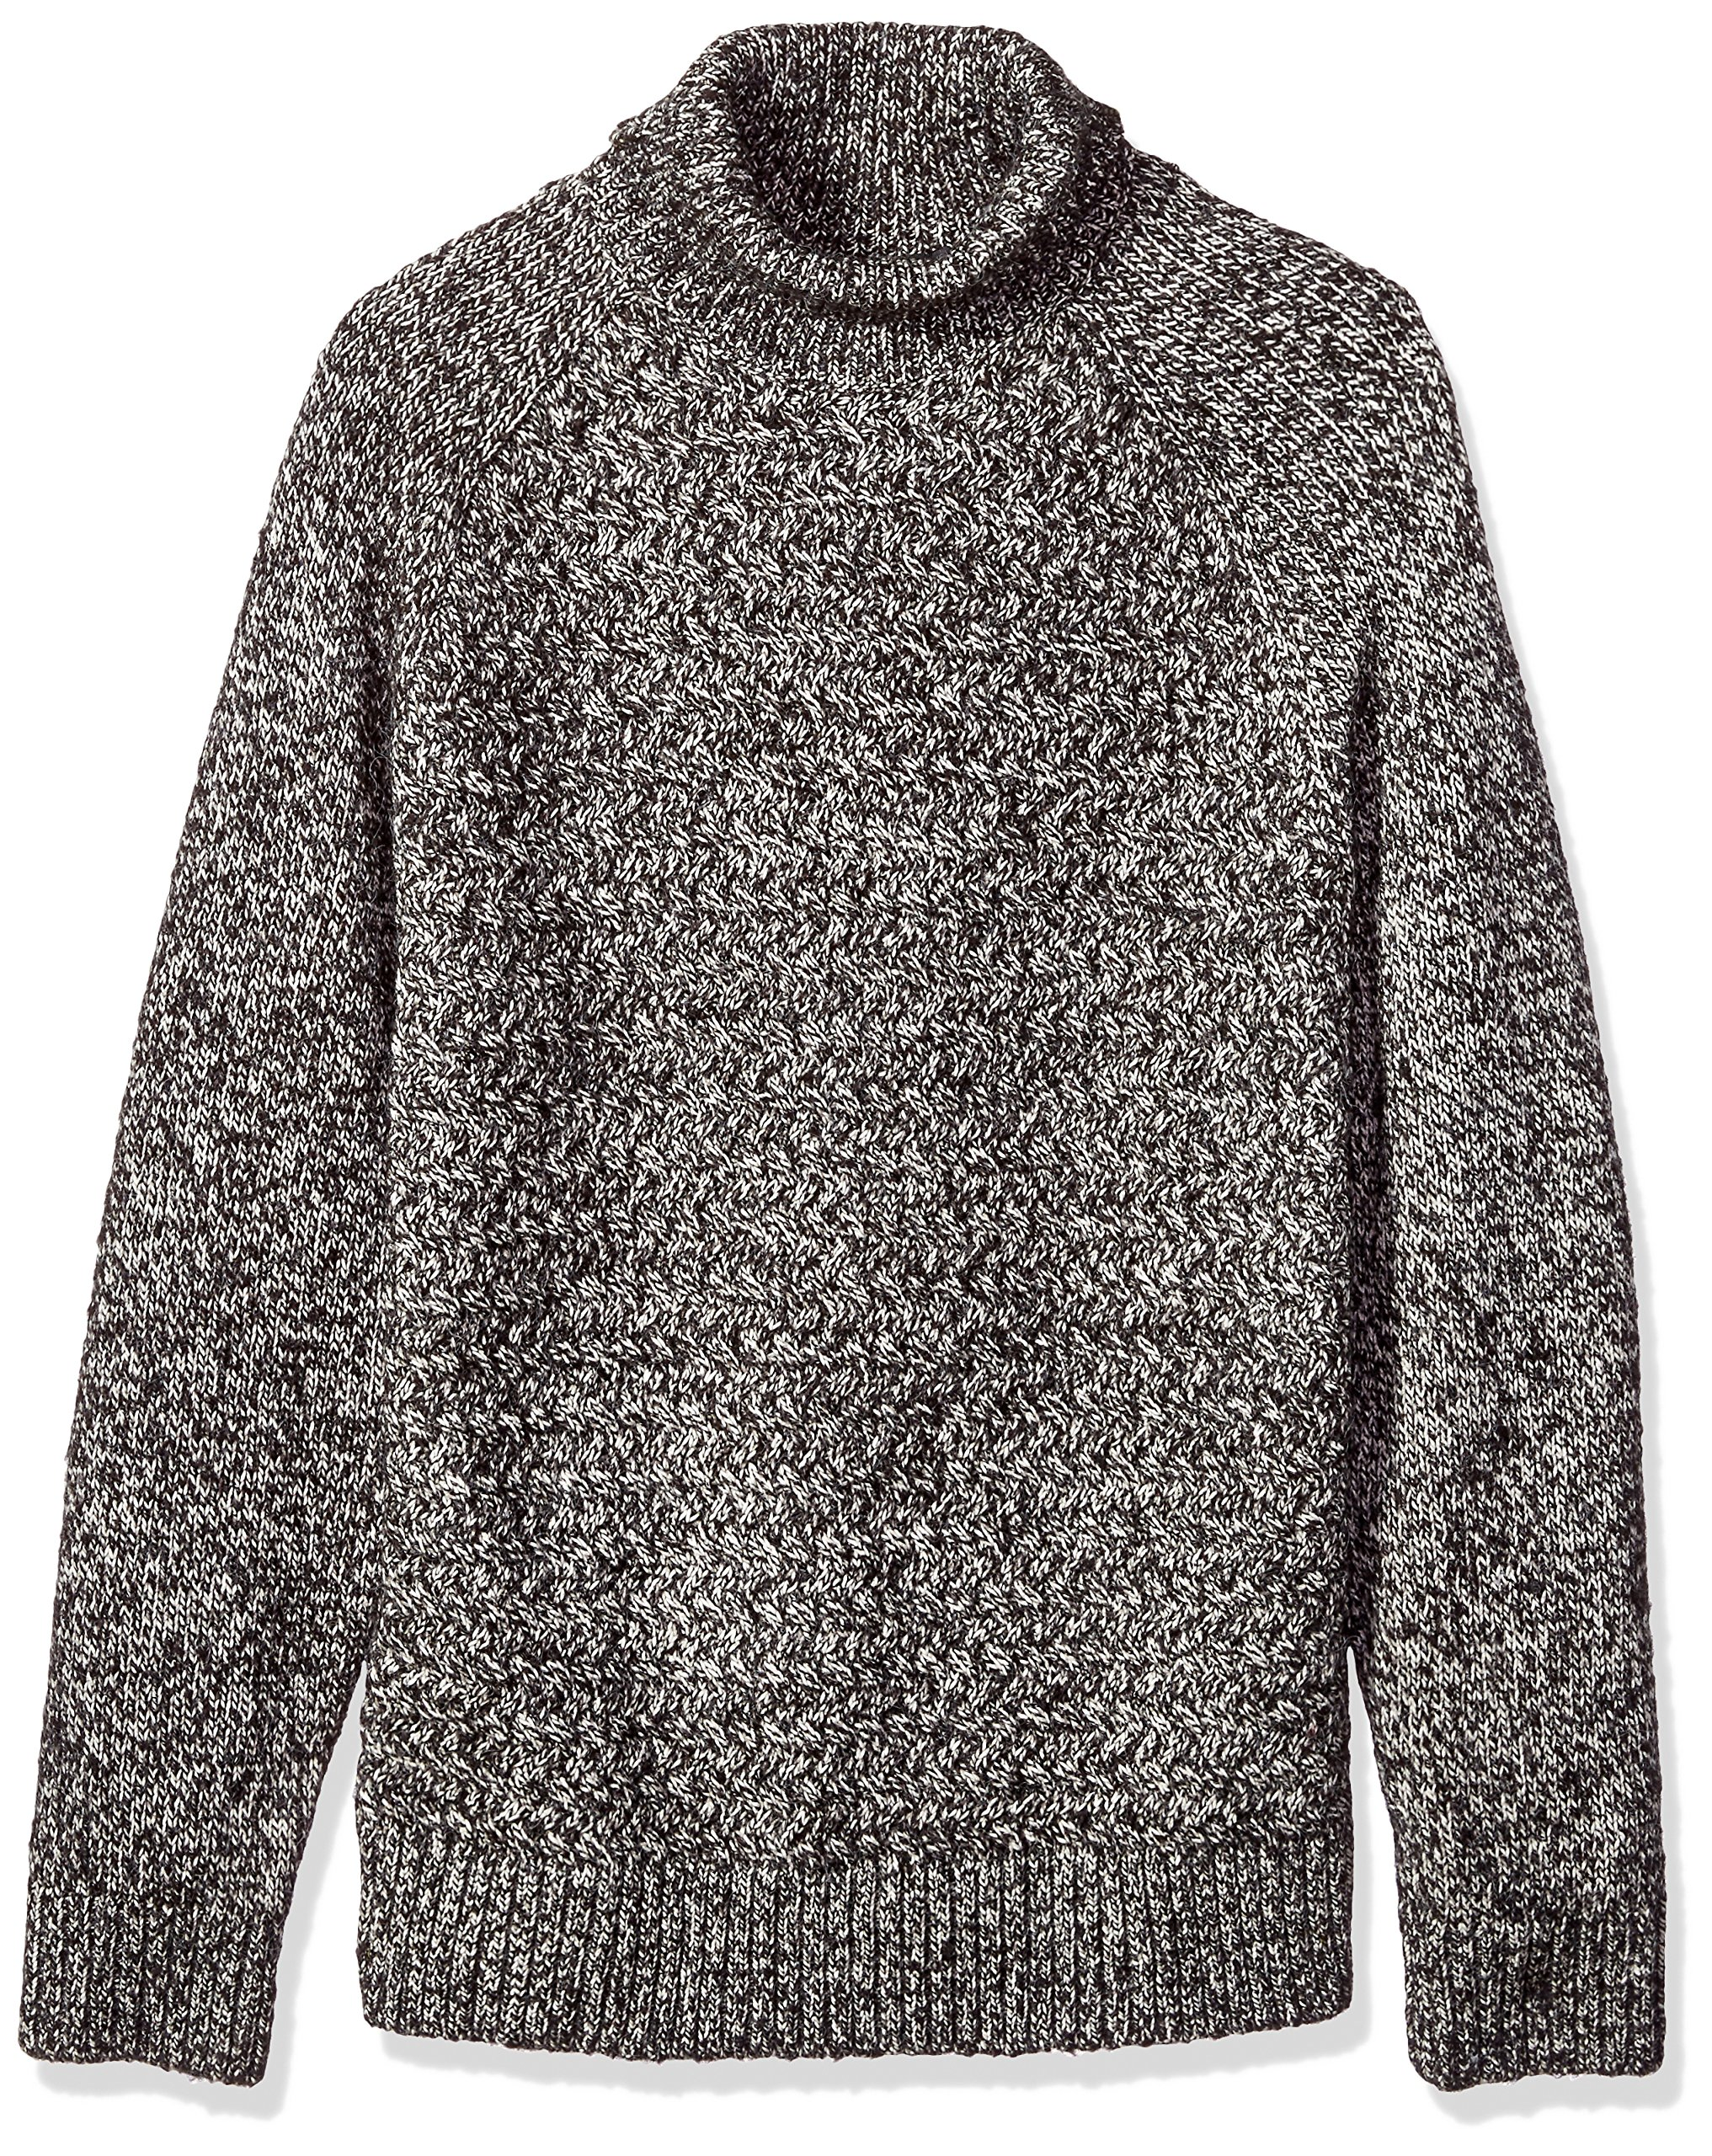 French Connection Men's Twisted Cable Turtleneck Sweater, Black, XL